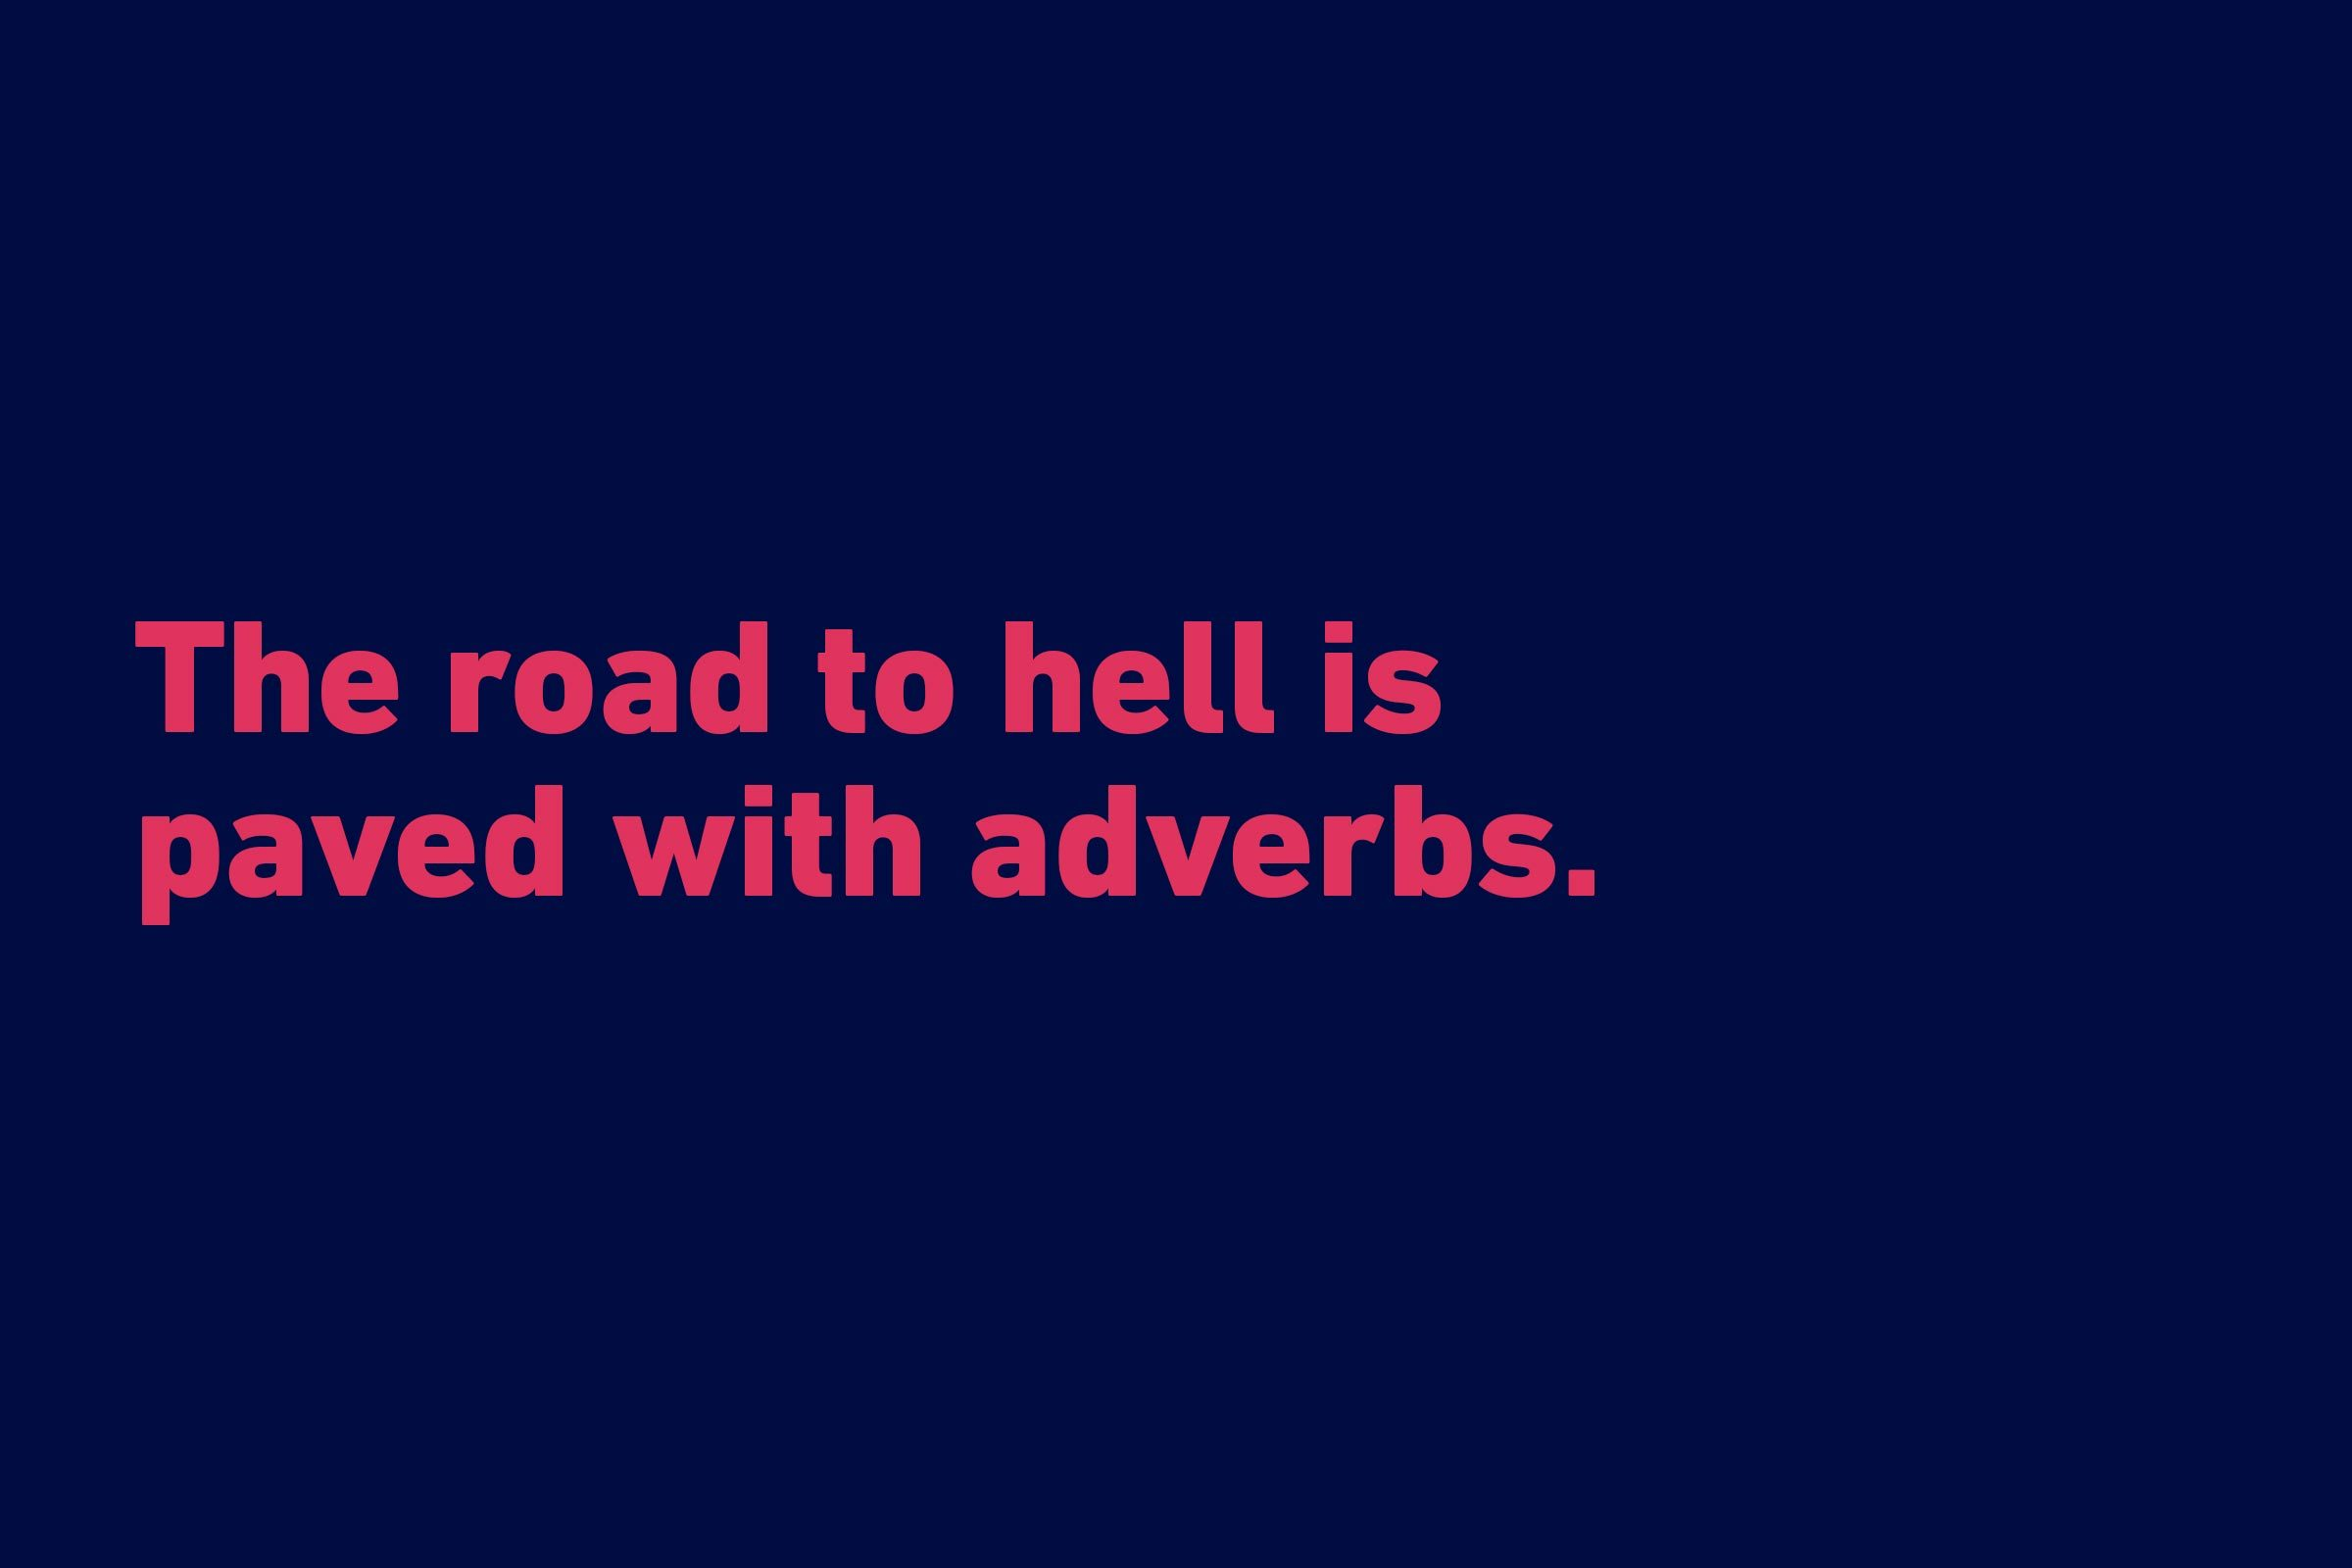 """The road to hell is paved with adverbs."" —Stephen King"